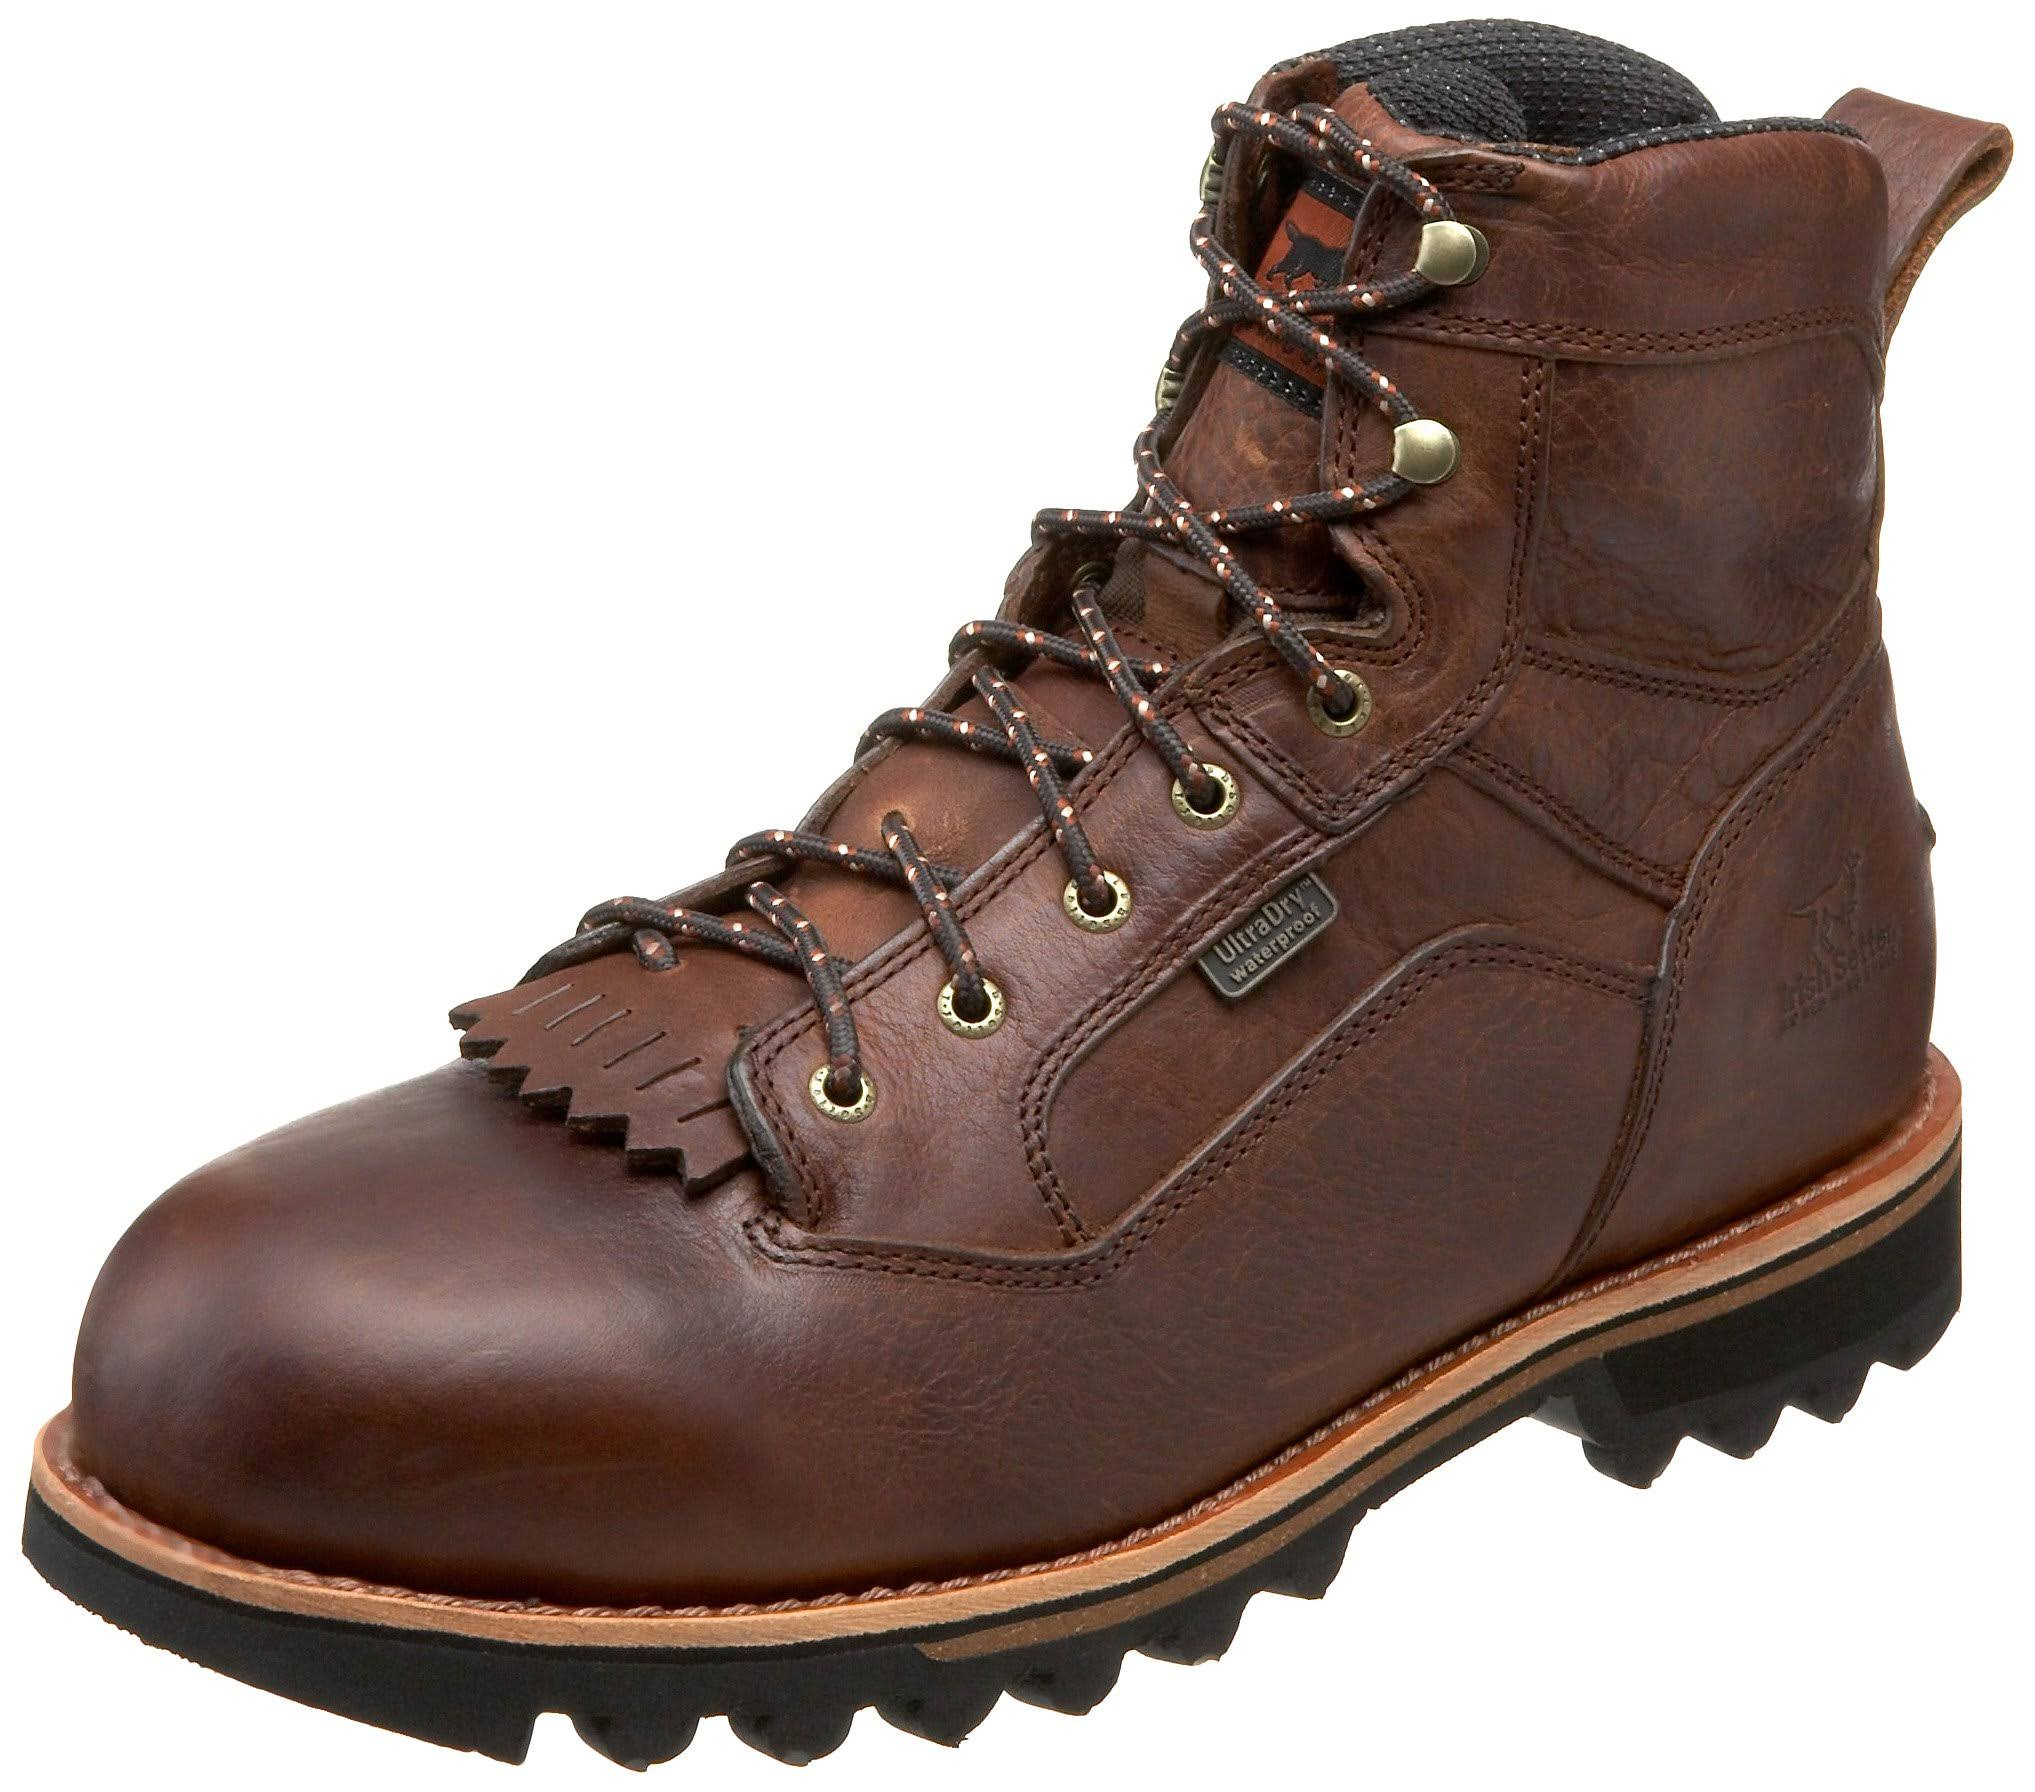 Irish Setter Men's Trailblazer Hunting Boots-11.5EE Brown